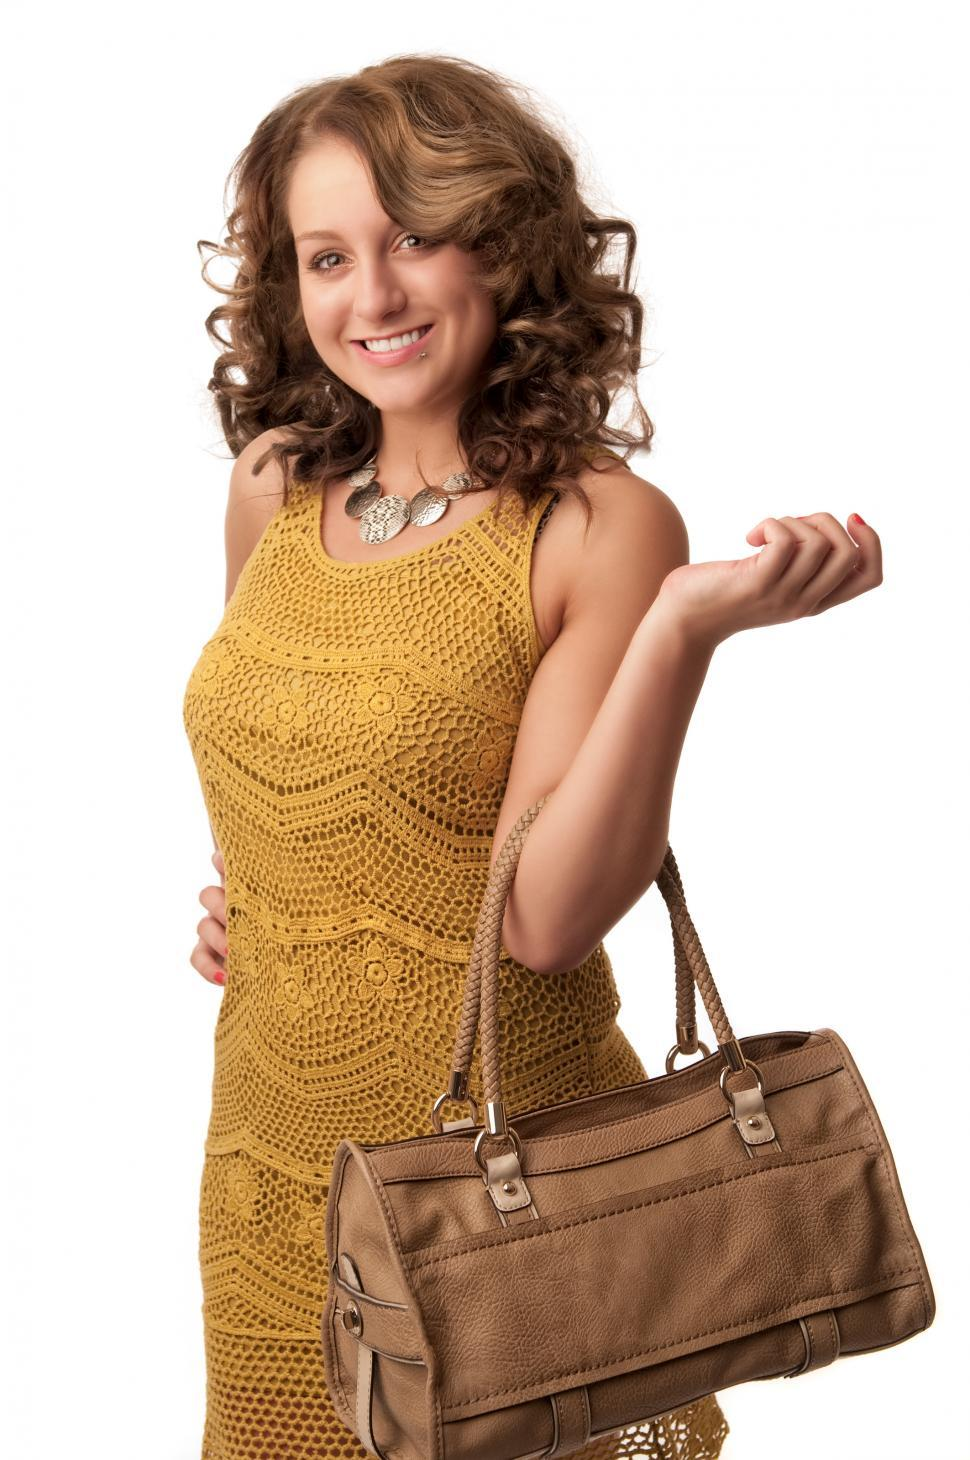 Download Free Stock HD Photo of Happy woman with purse Online